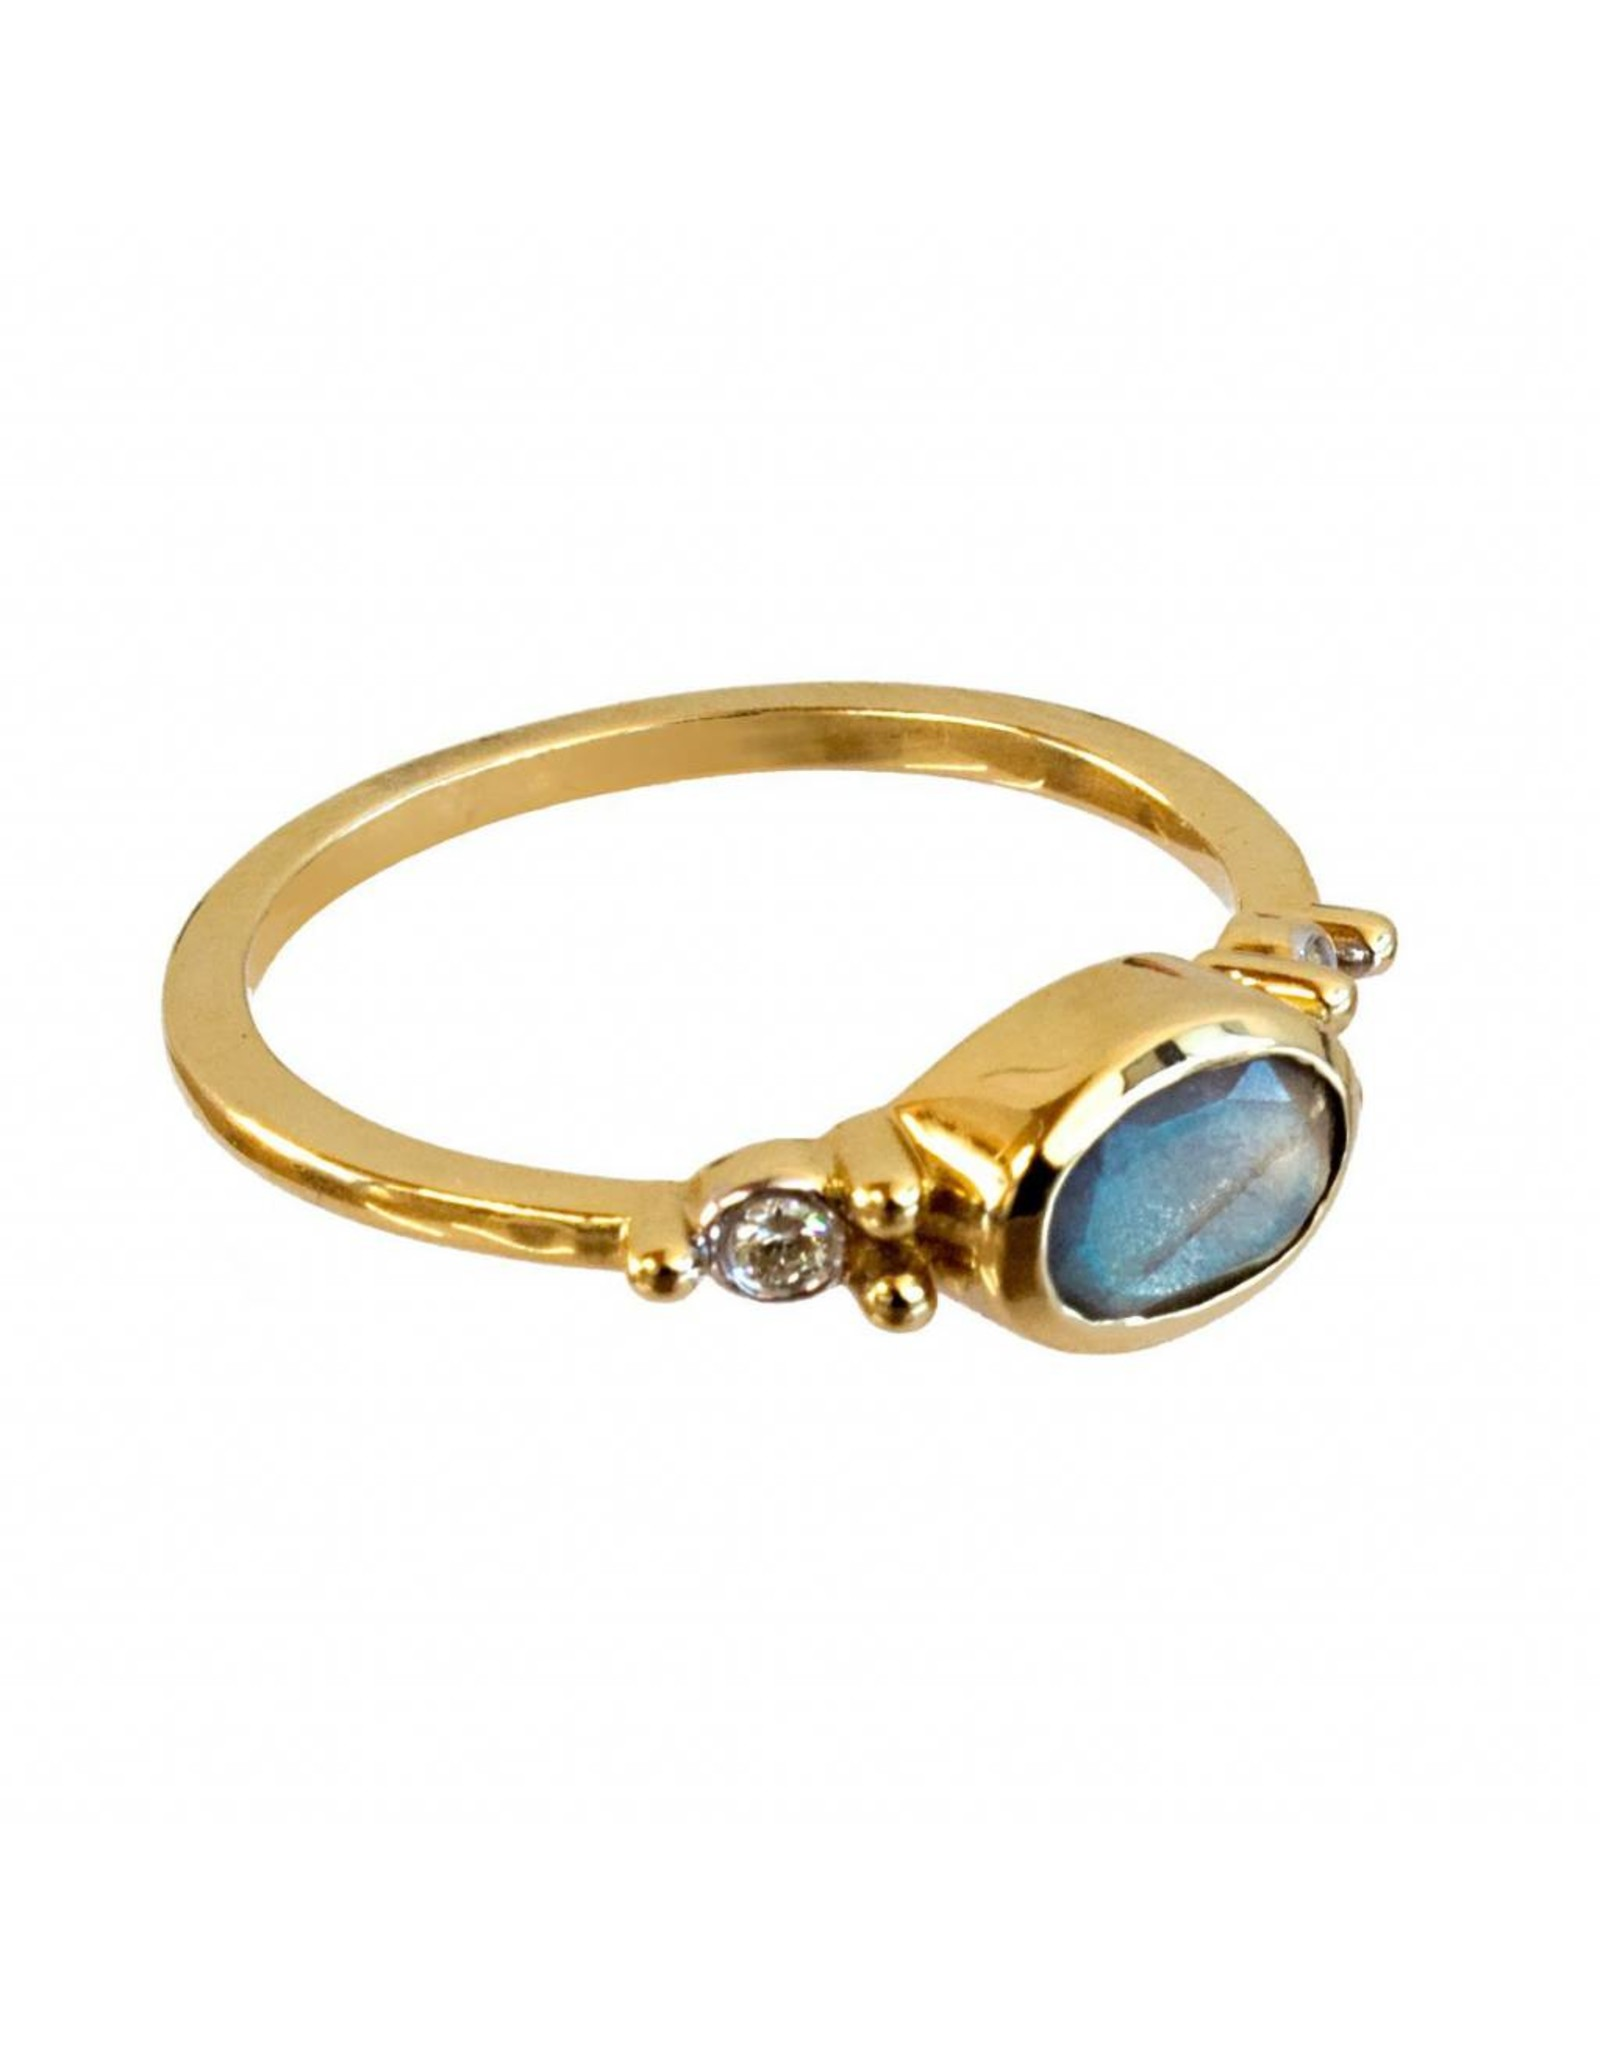 Bo Gold Ring - Gold - Labradorite - Diamond